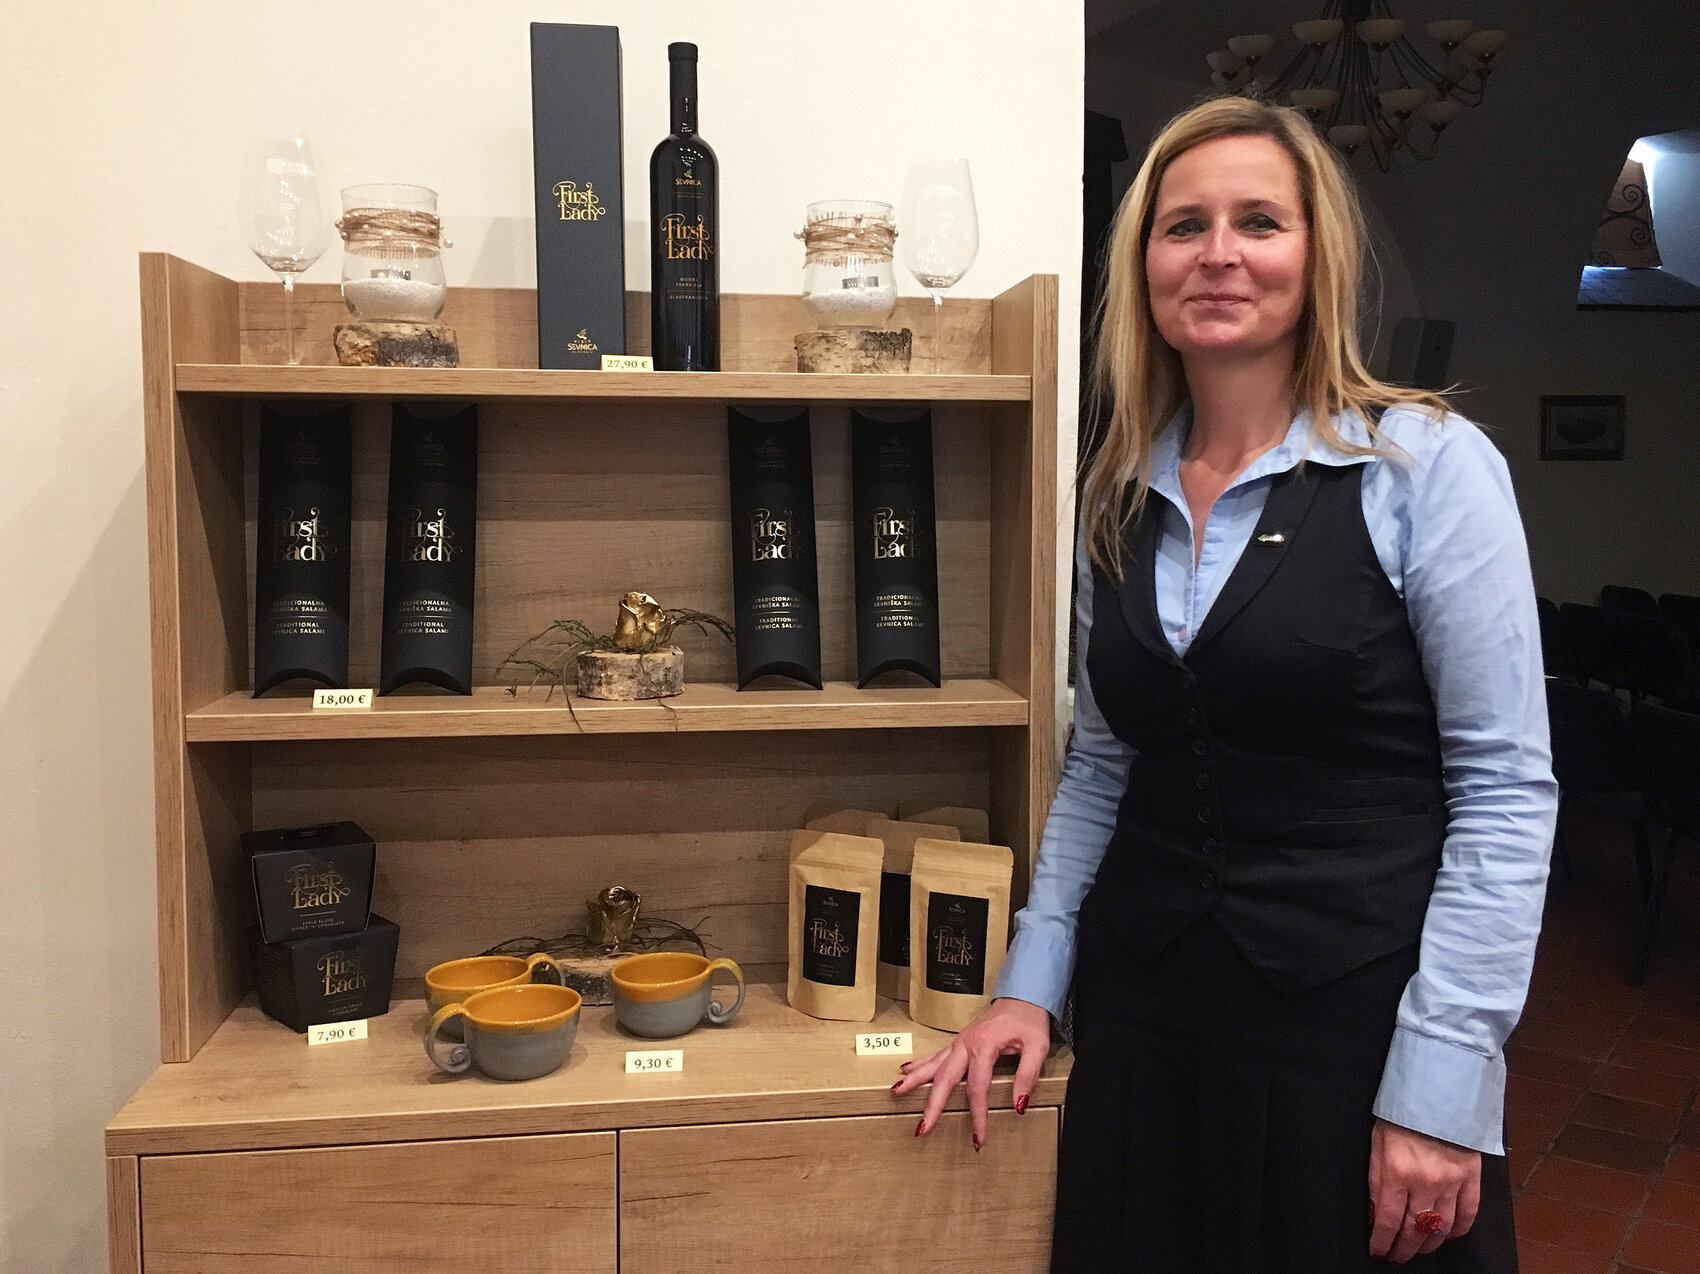 Mojca Pernovsek, head of Sevnica's tourism bureau, at the town's 900-year-old castle, where First Lady products are sold honoring native daughter Melania Trump. They include specially made wine, salami, chocolate, teacups and face cream.     (Joanna Kakissis for NPR)